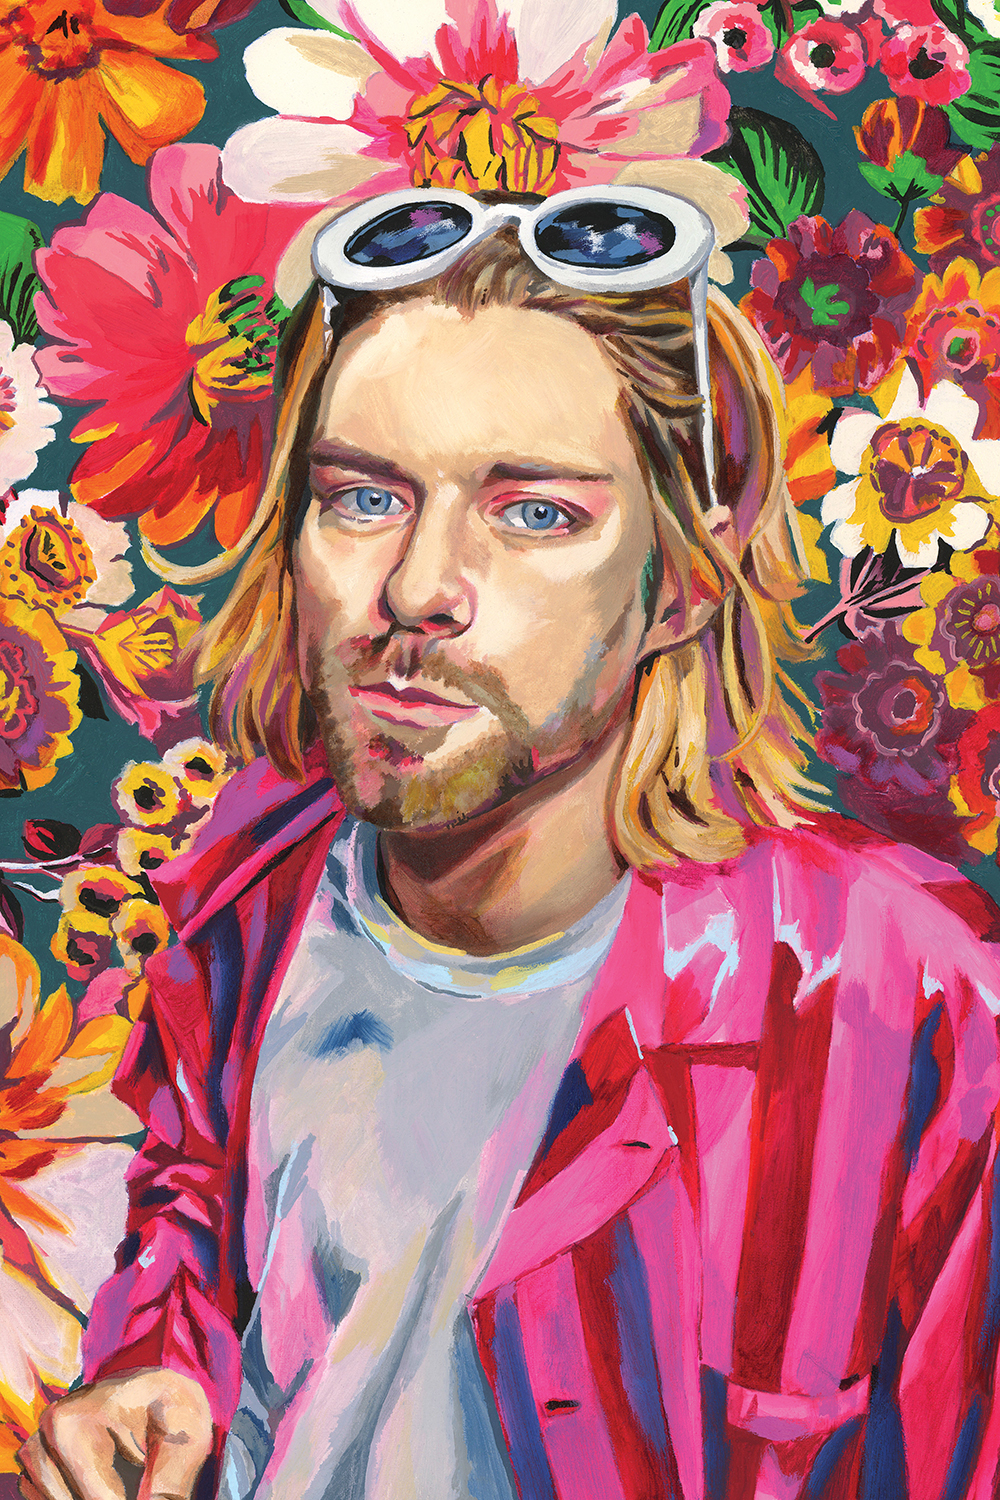 Kurt Cobain wearing white t-shirt, pink button down, and white sunglasses in front of a floral pattern